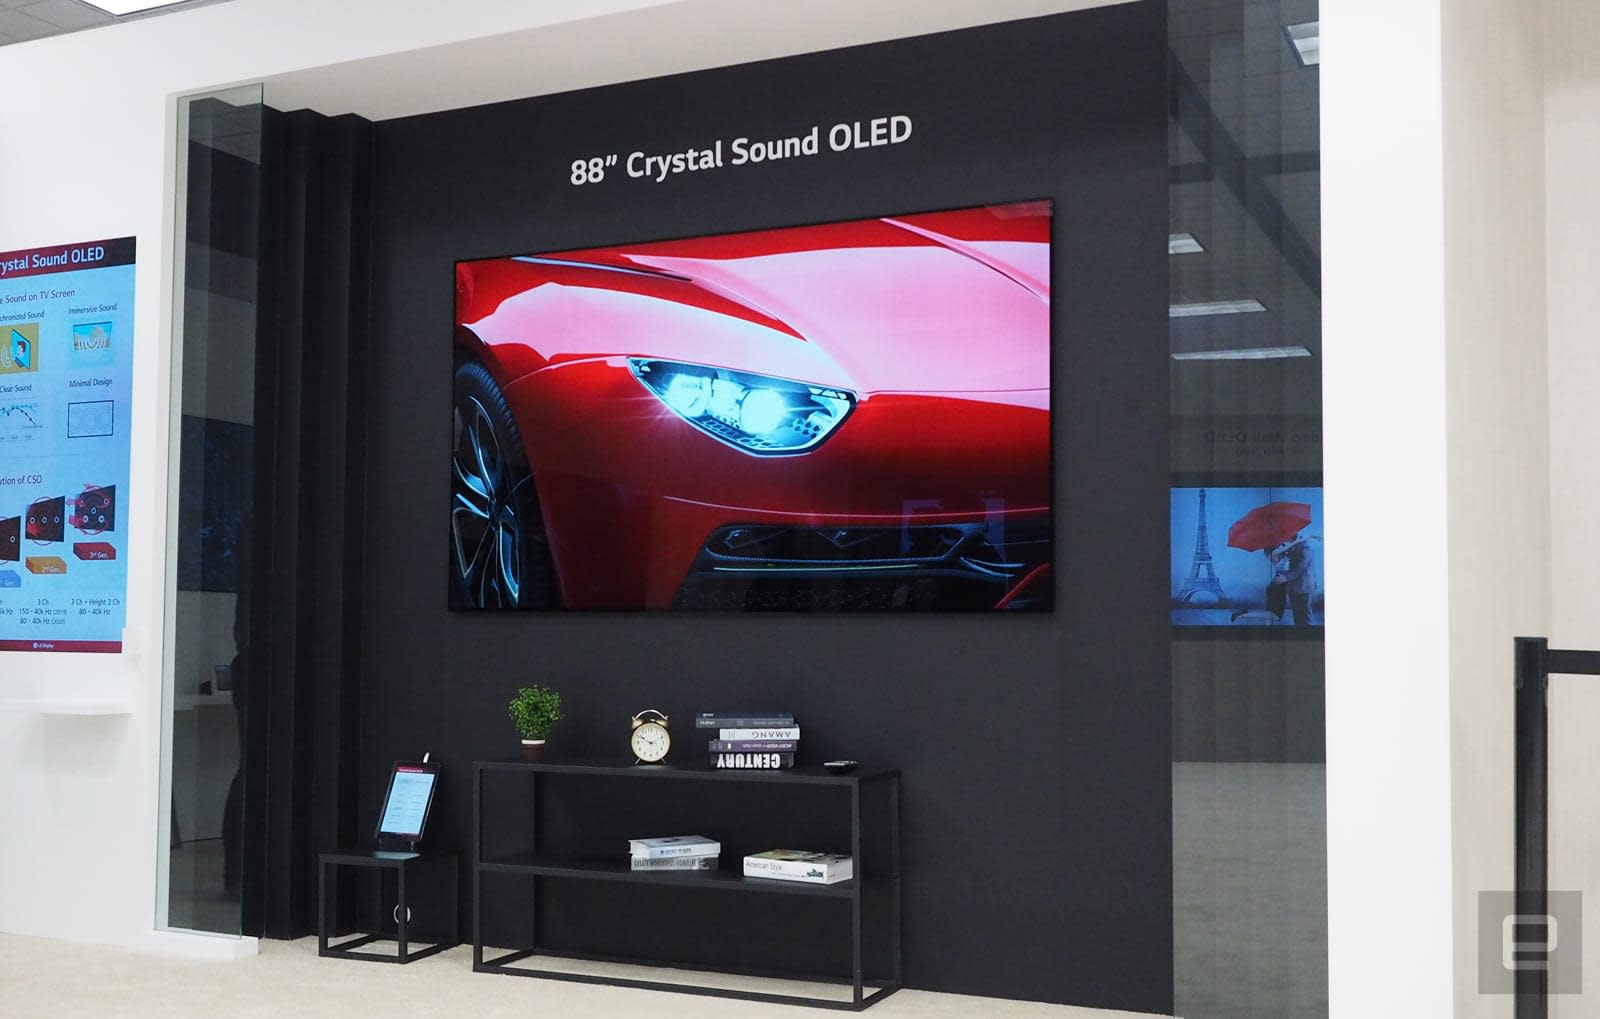 LG Display's 88-inch 8K OLED has Dolby Atmos sound but no